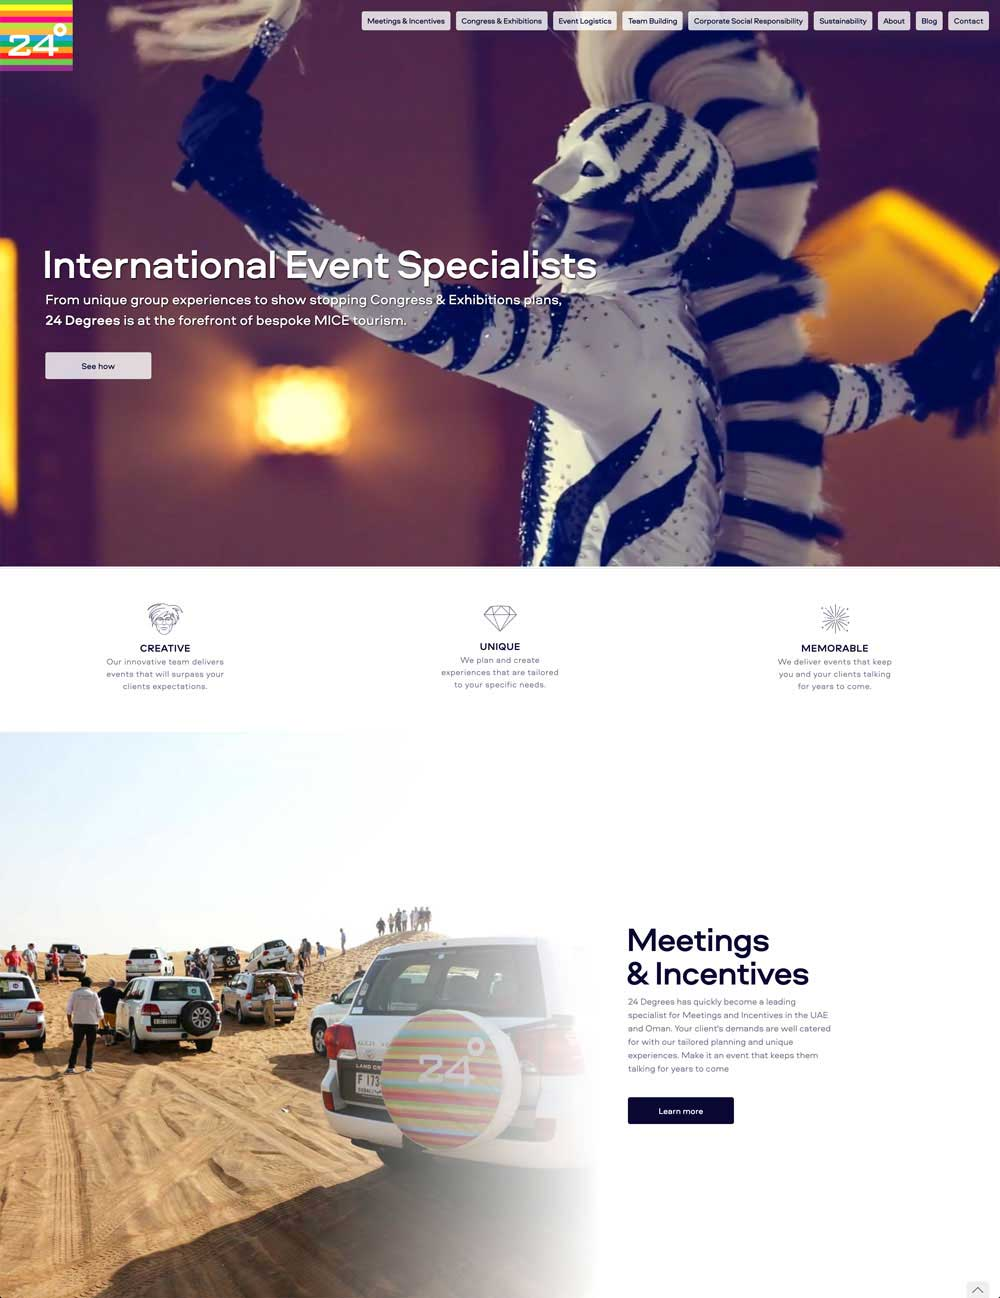 Expertise.tv website design and creative direction